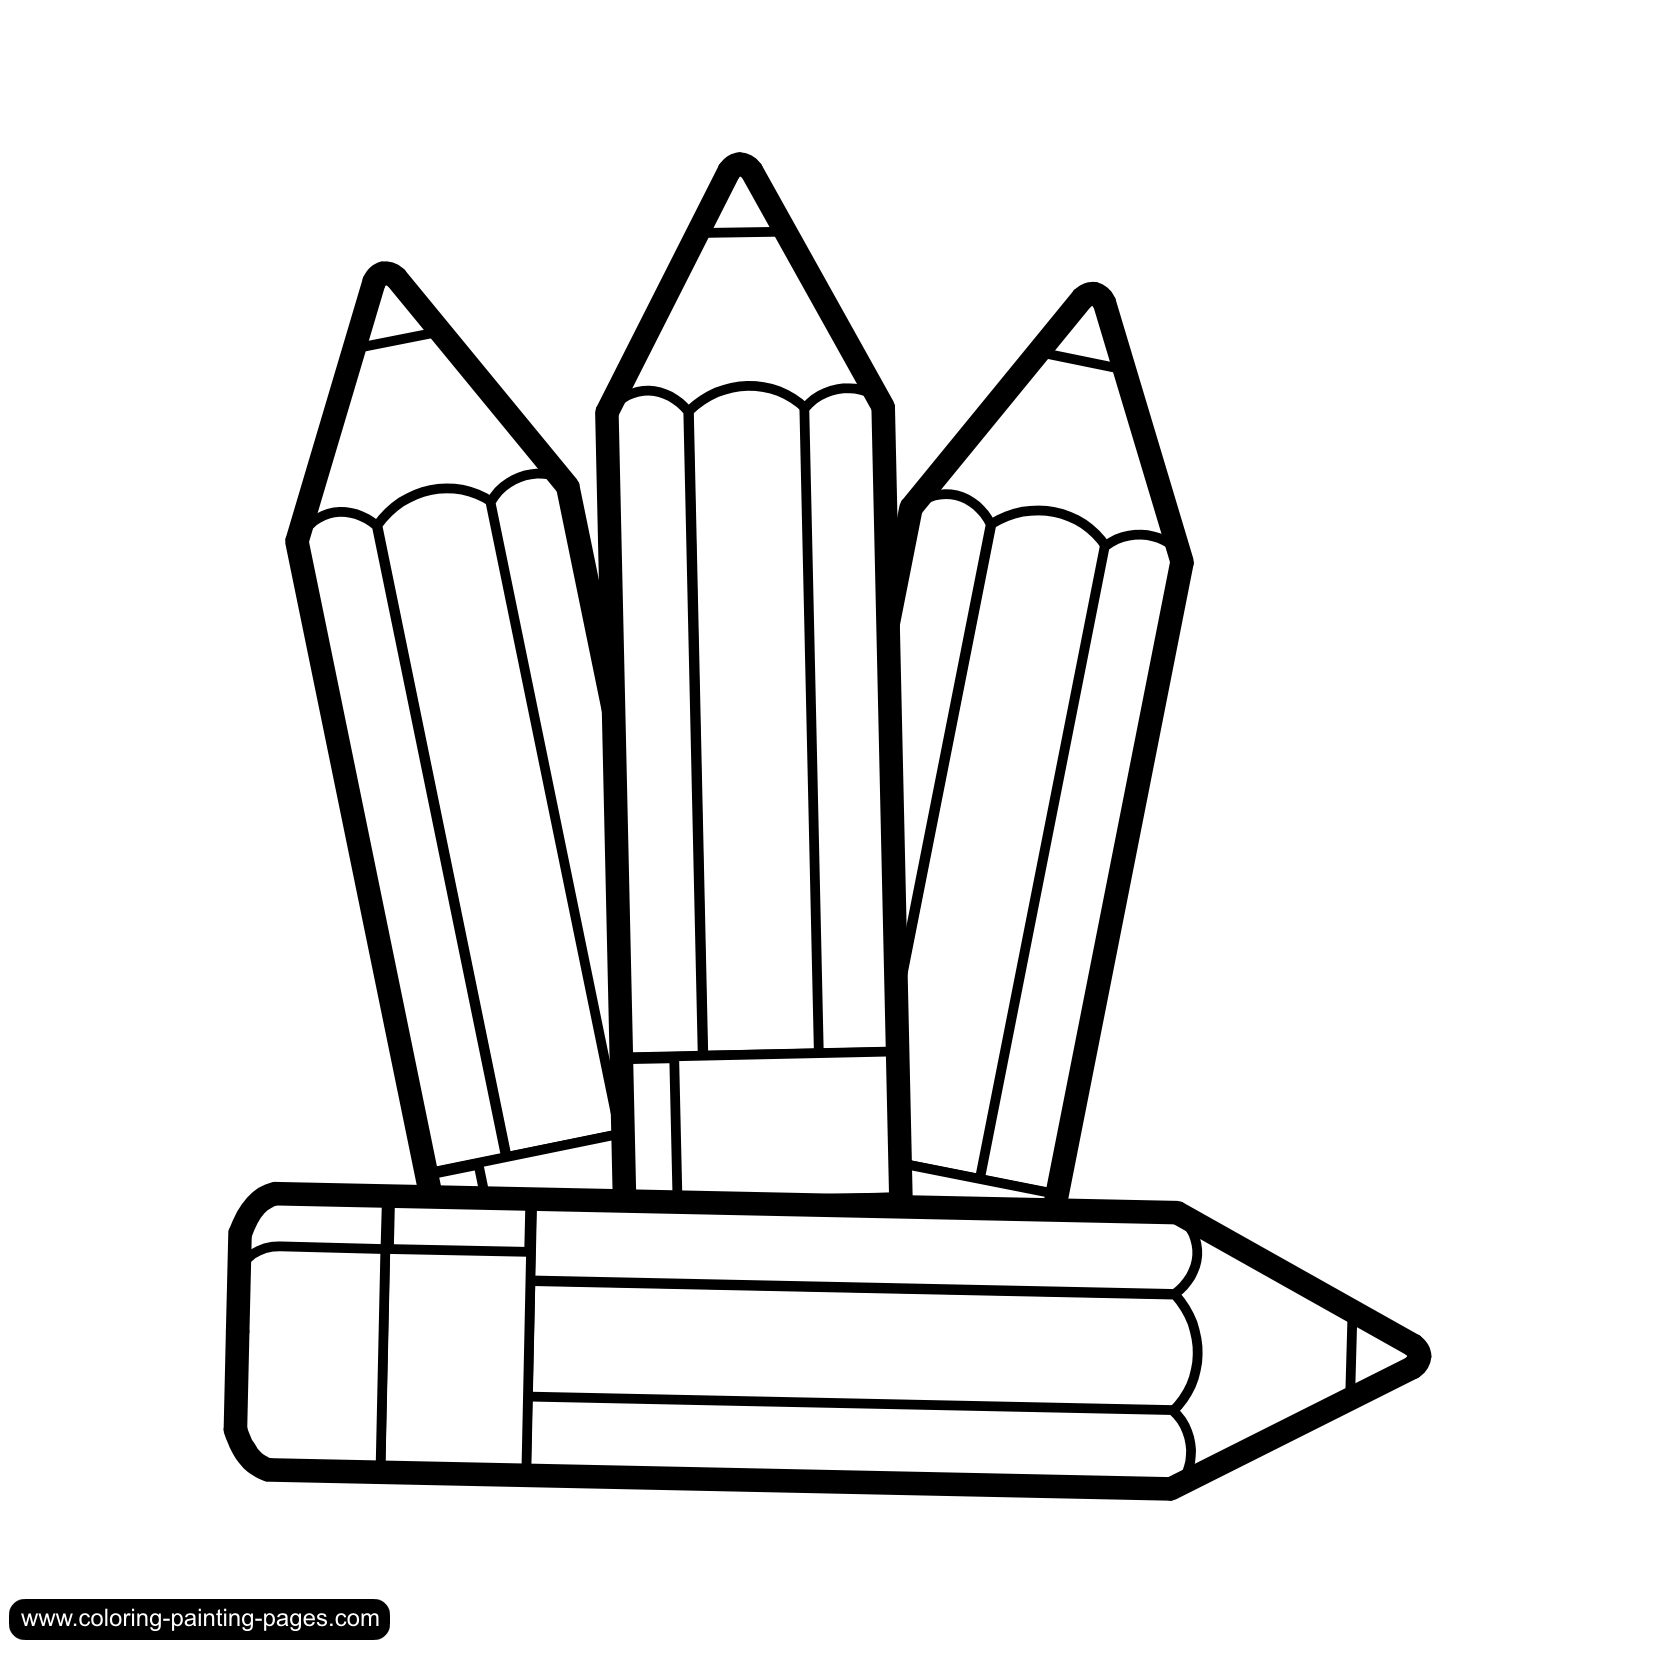 Pencil  black and white marker clipart black and white pencil in color marker